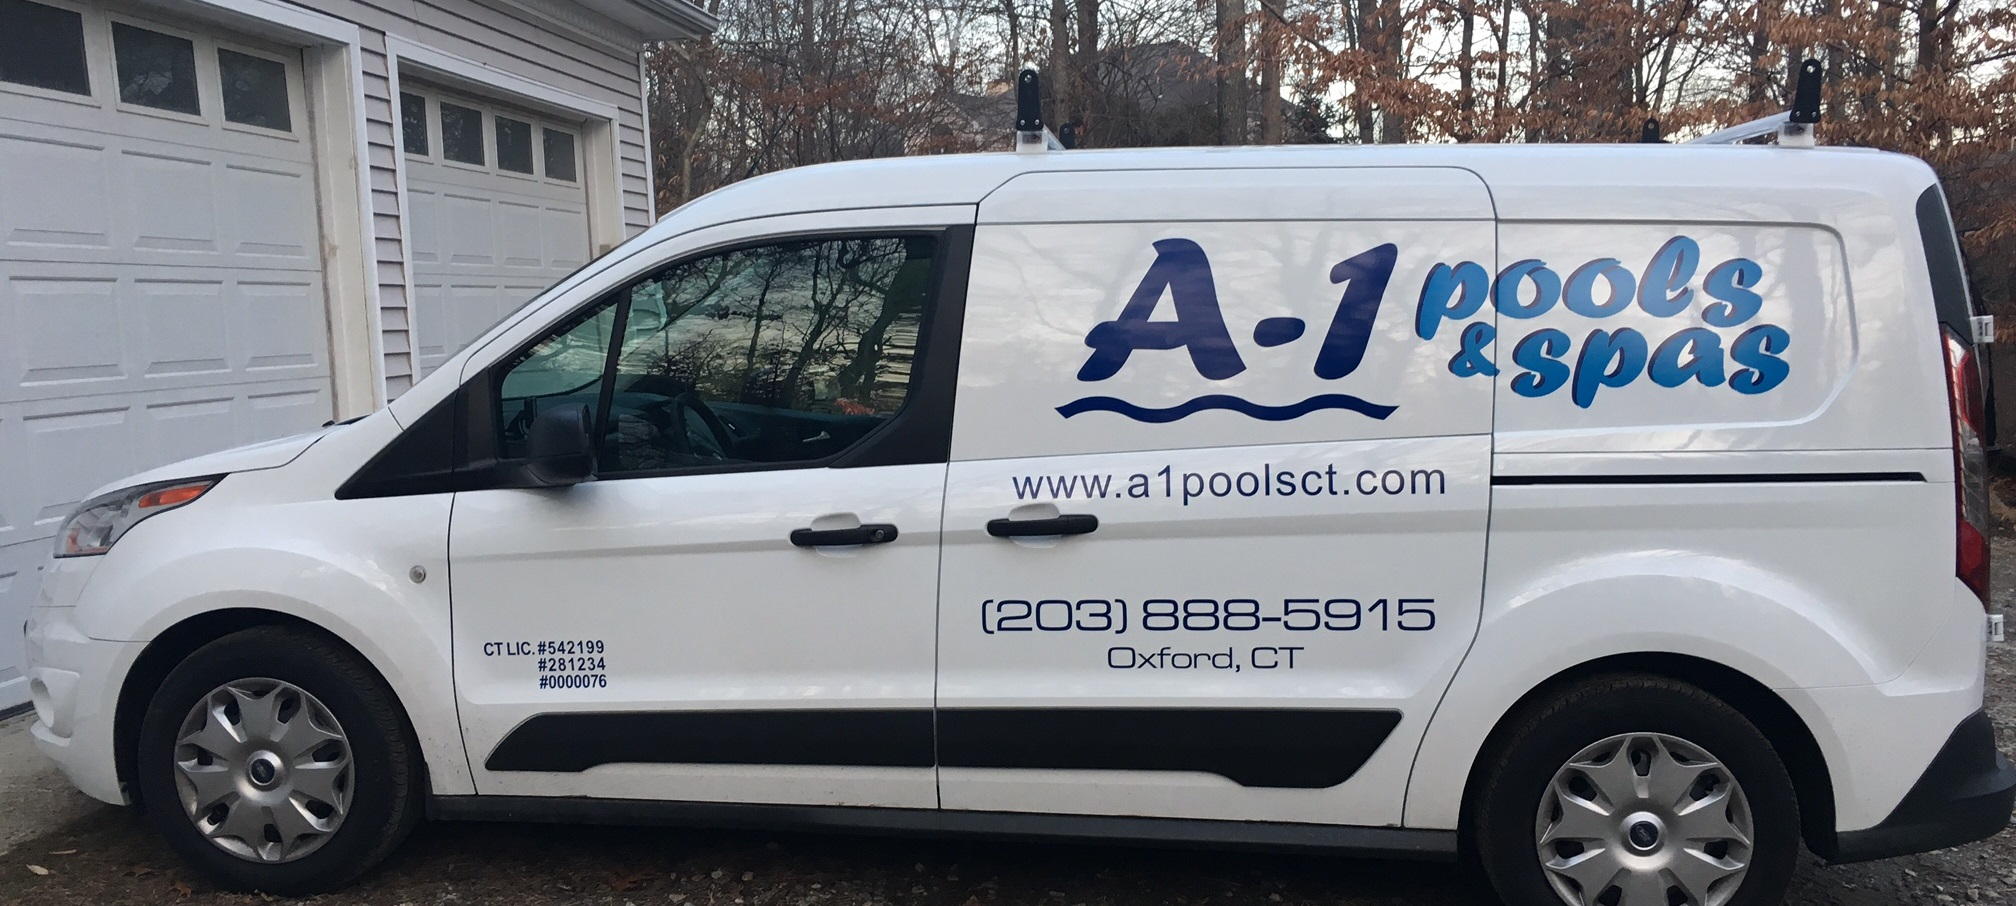 A- 1 Pools & Spas Van